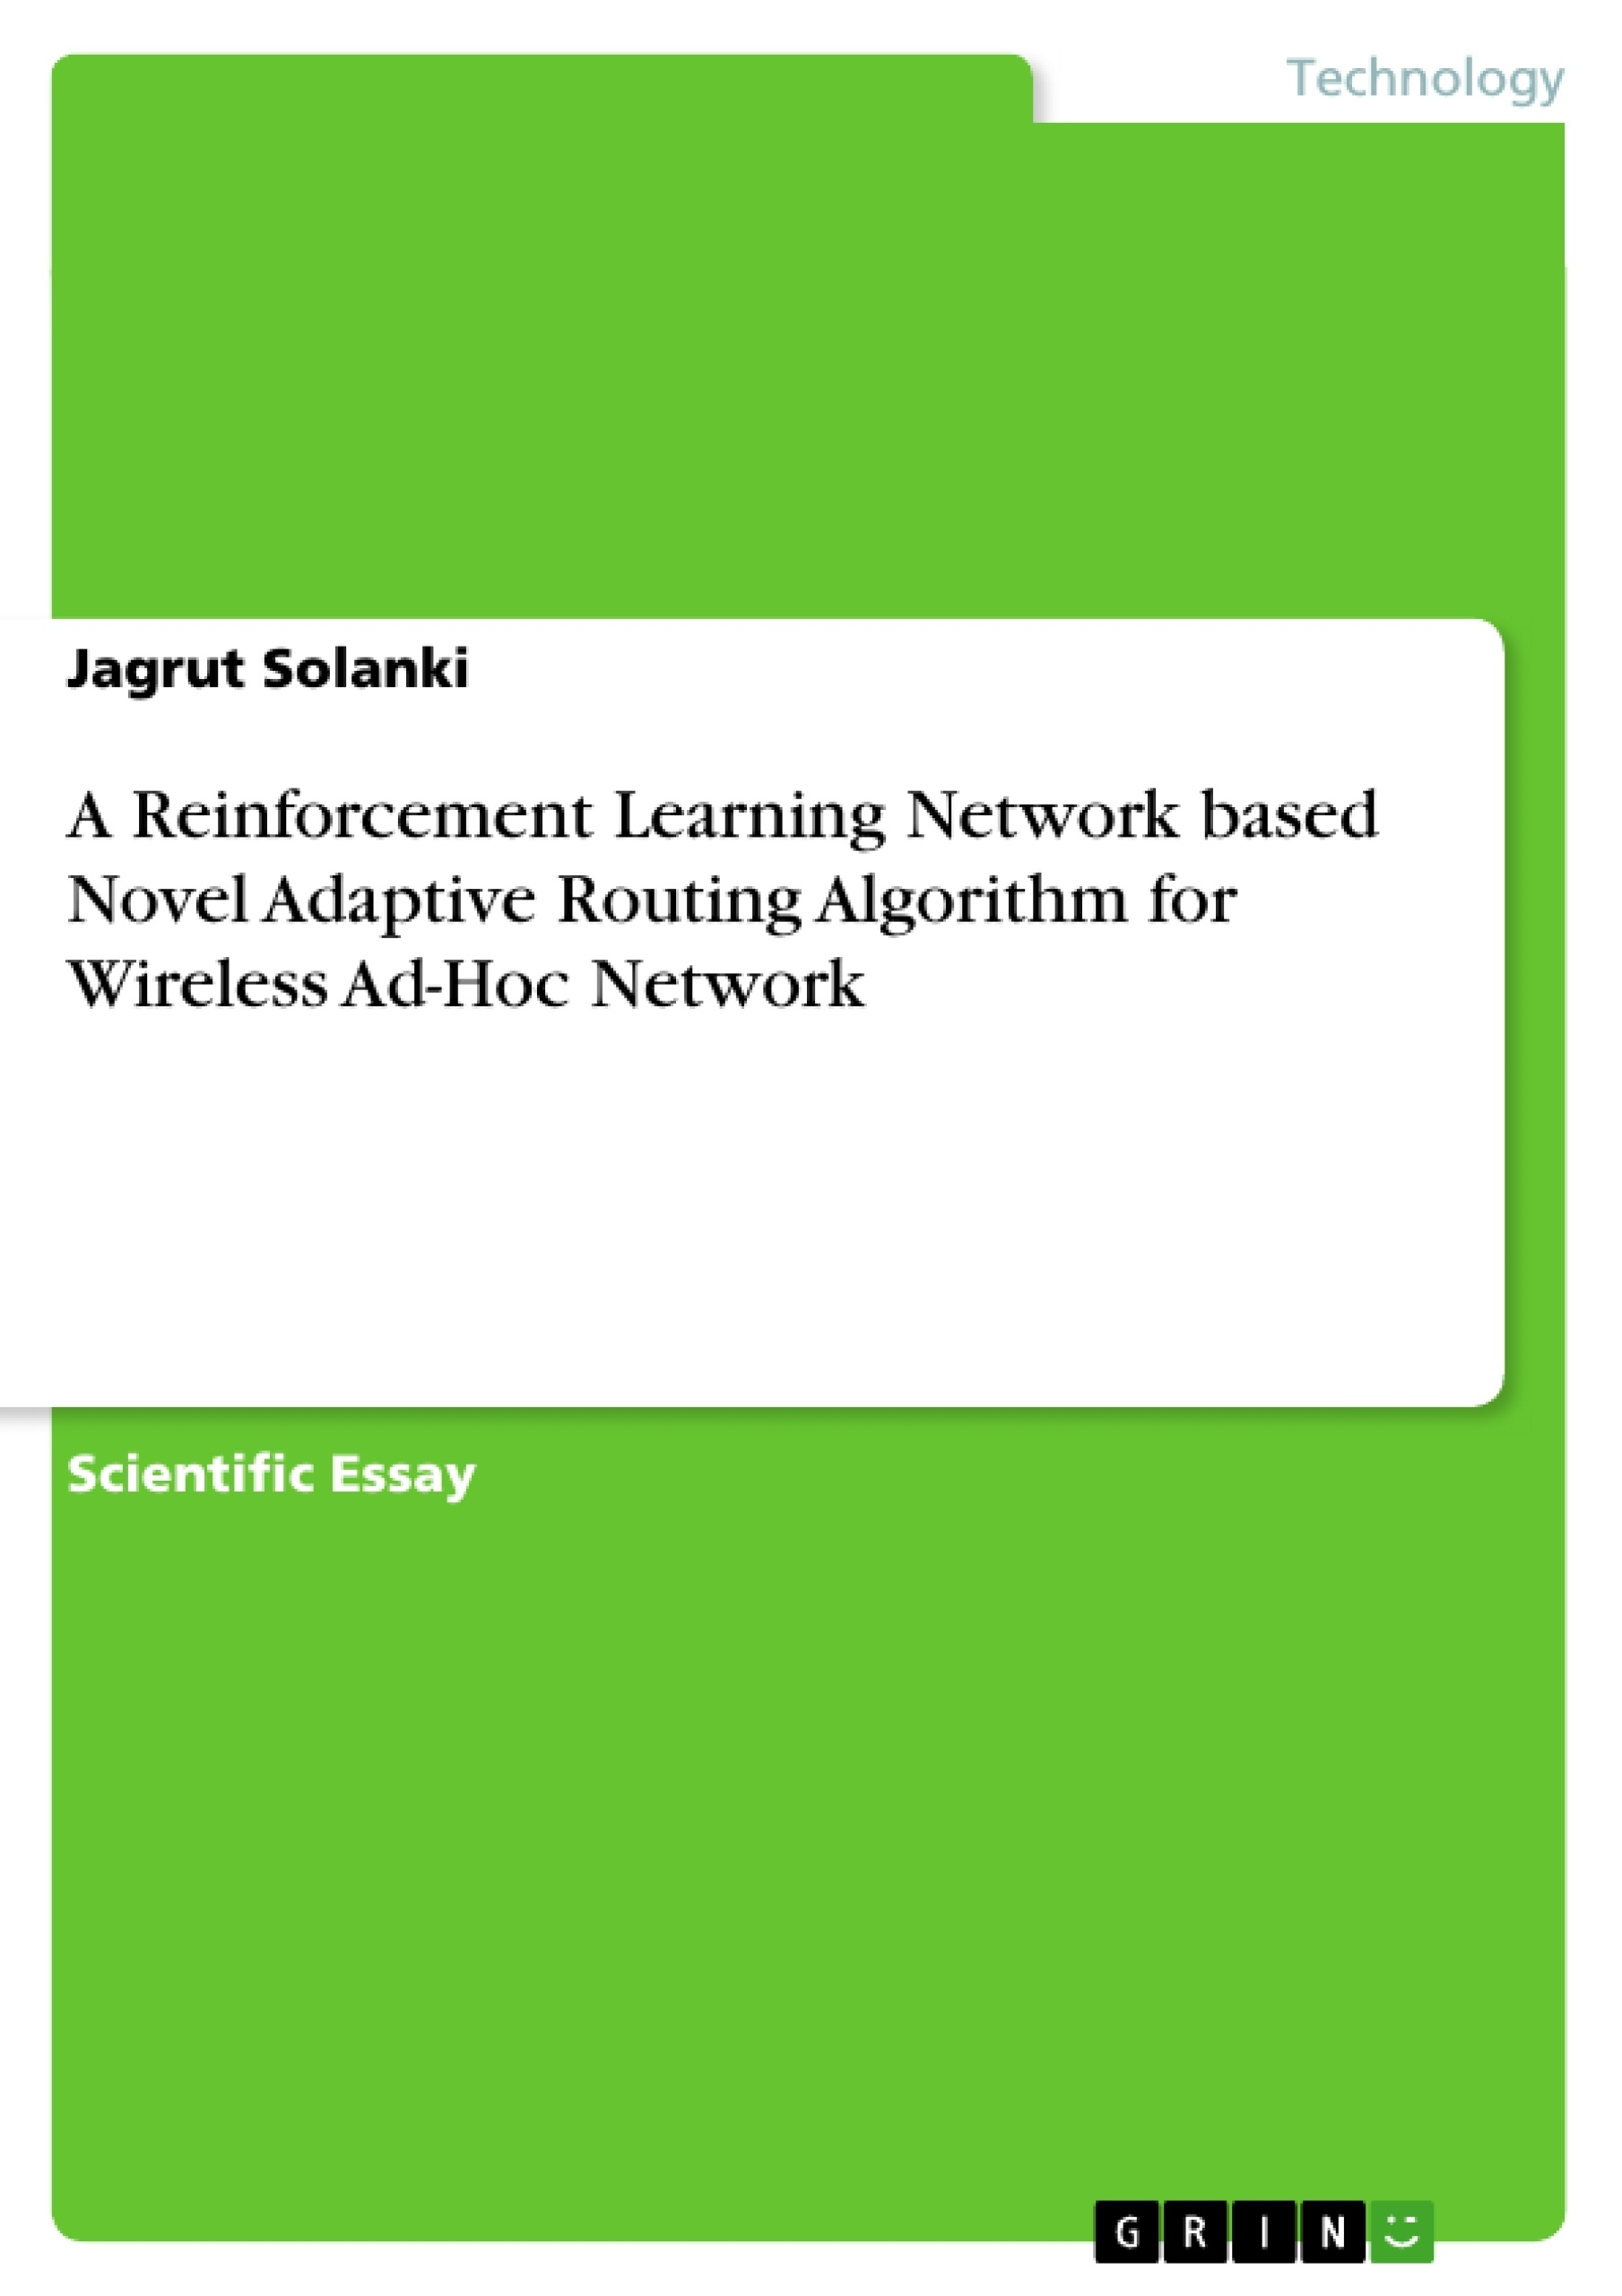 Title: A Reinforcement Learning Network based Novel Adaptive Routing Algorithm for Wireless Ad-Hoc Network